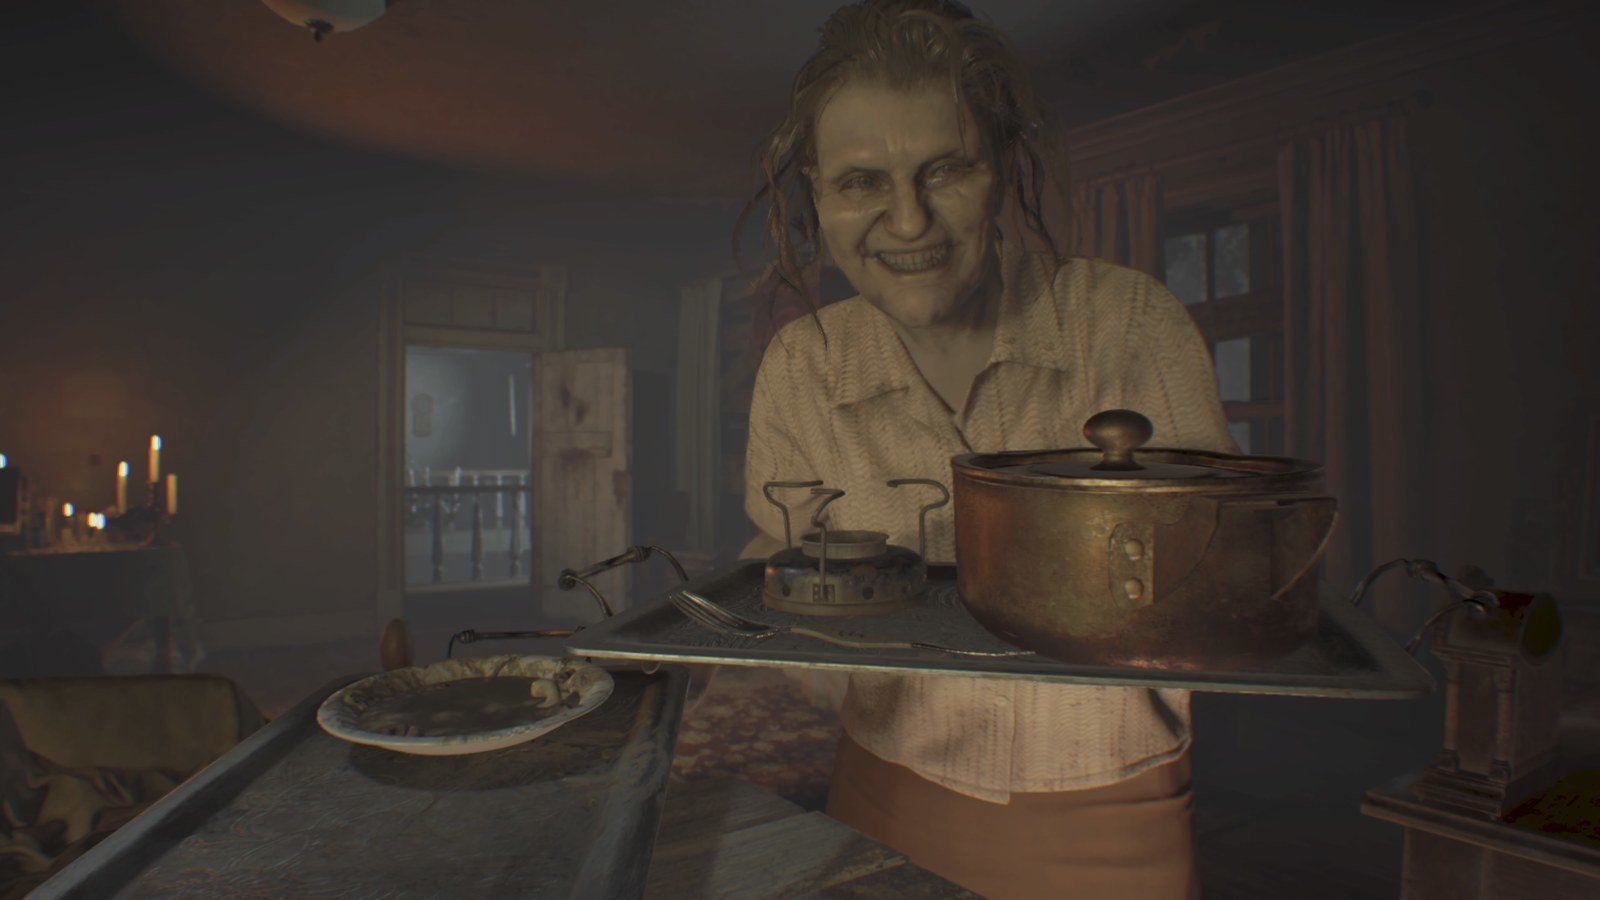 Why it's scary: Set in a nightmarish vision of rural Louisiana, Resident Evil 7: Biohazard follows the story of Ethan Winters stumbling onto a seemingly abandoned plantation while searching for his missing wife, Mia. What he discovers however, is a psychopathic family called the Bakers who imprison him in their mansion infected with the